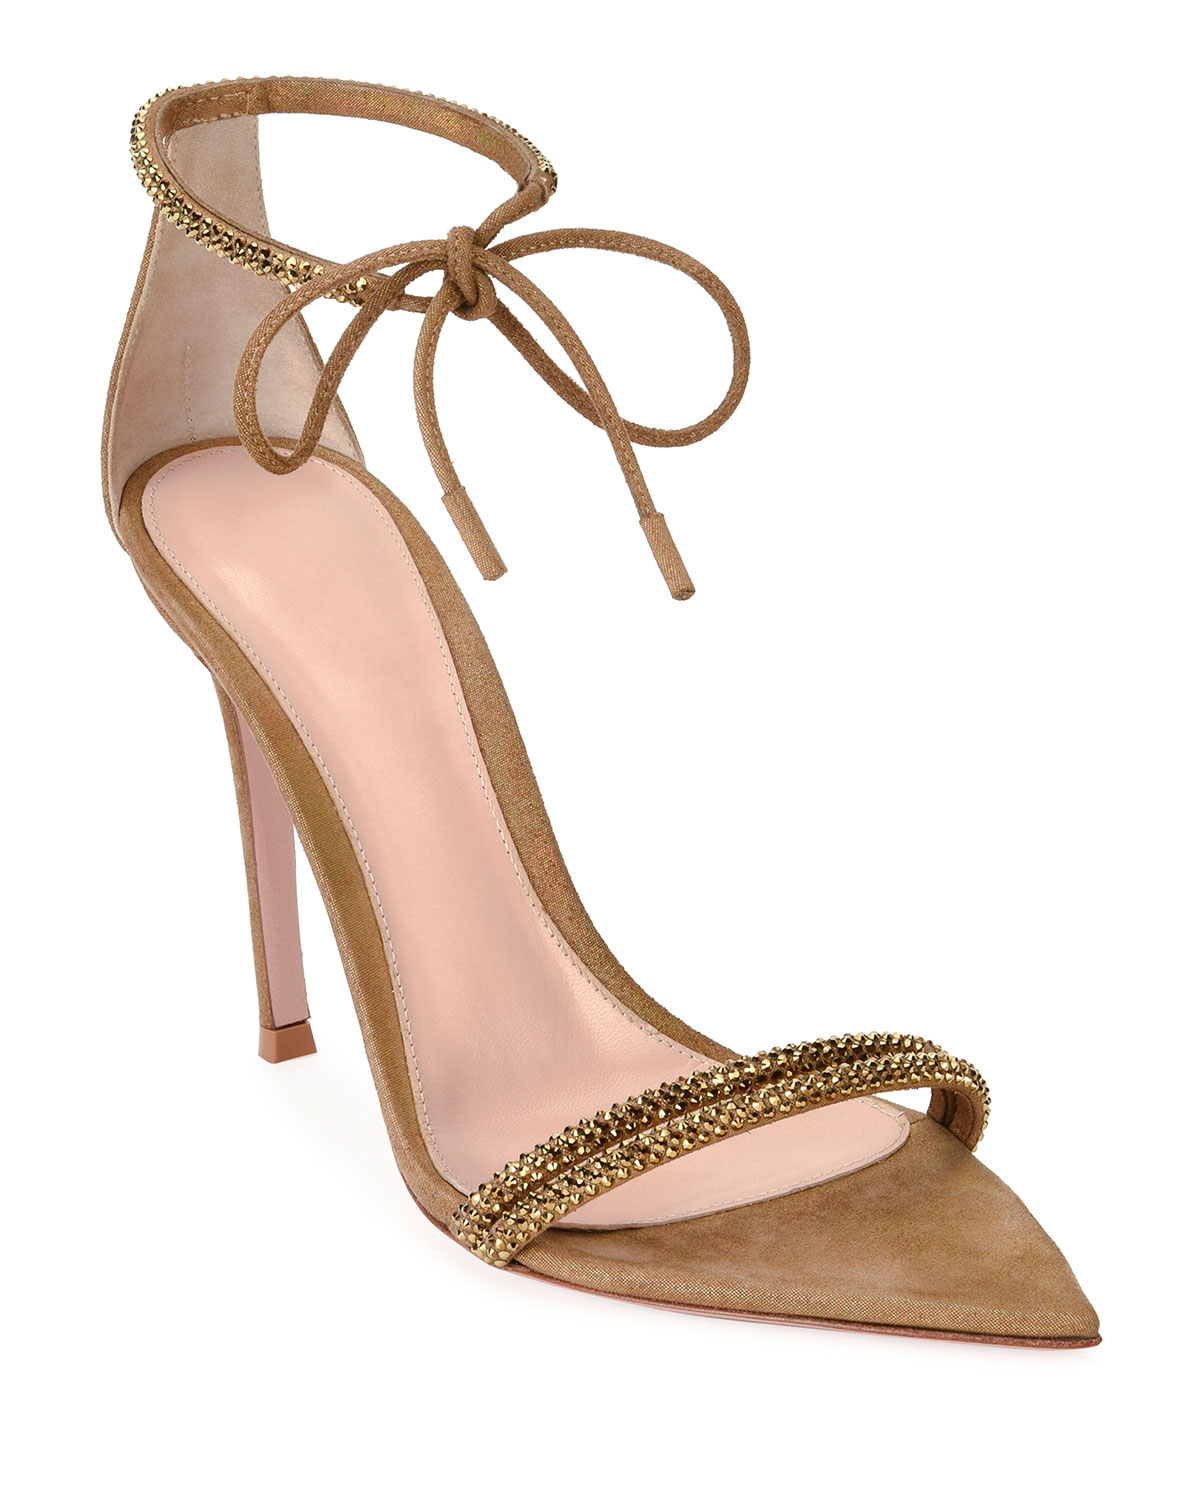 Gianvito Rossi Pointed Open-Toe Ankle